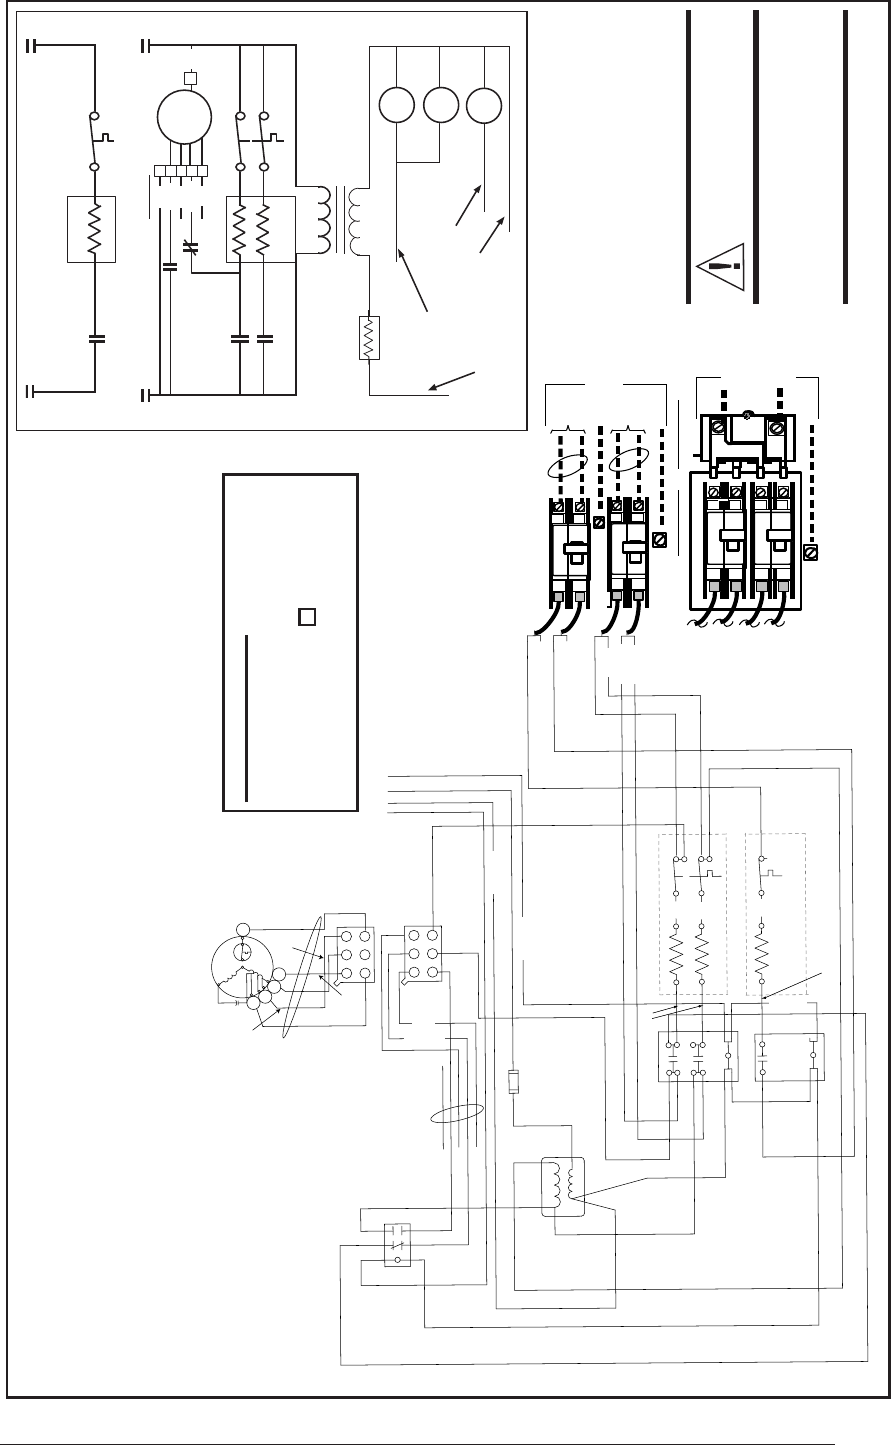 Manufactured Home Wiring Diagram from lh3.googleusercontent.com